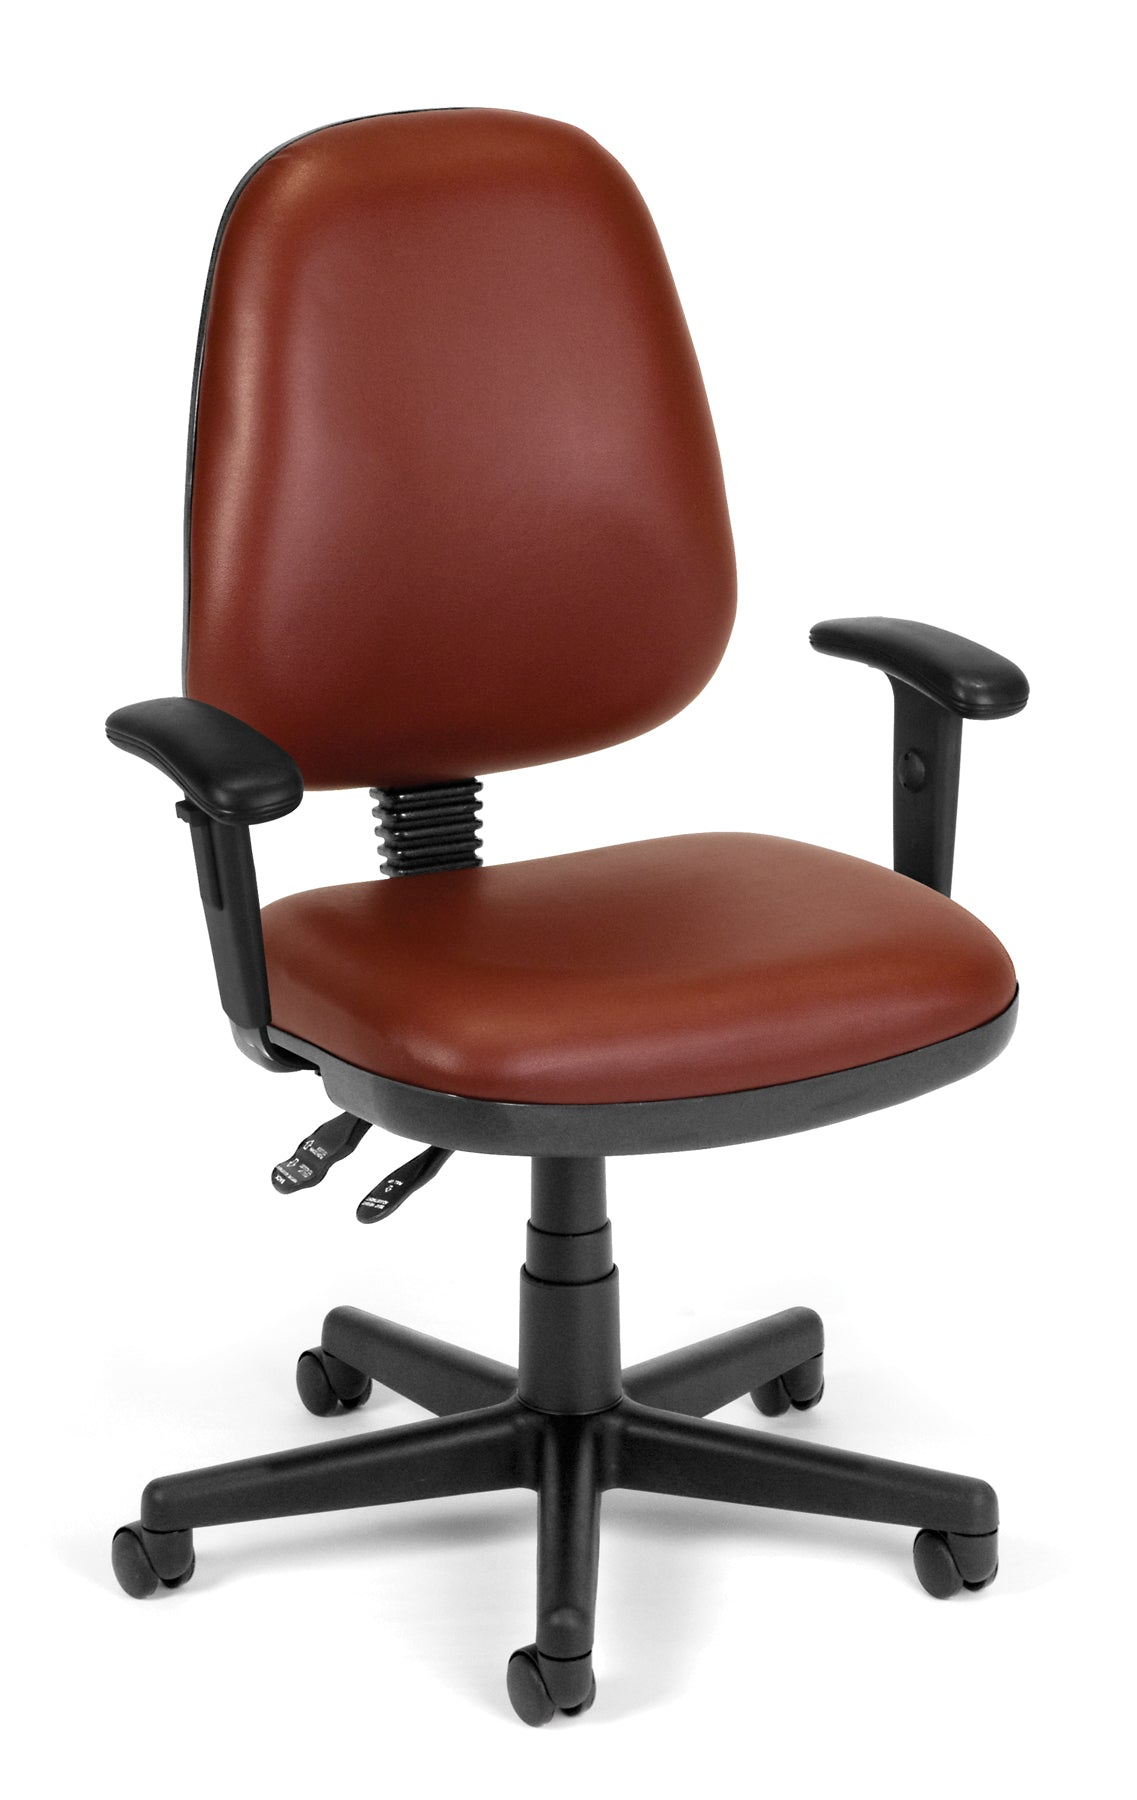 Ofminc Model 119-VAM-AA Straton Series Vinyl Swivel Task Arms Chair